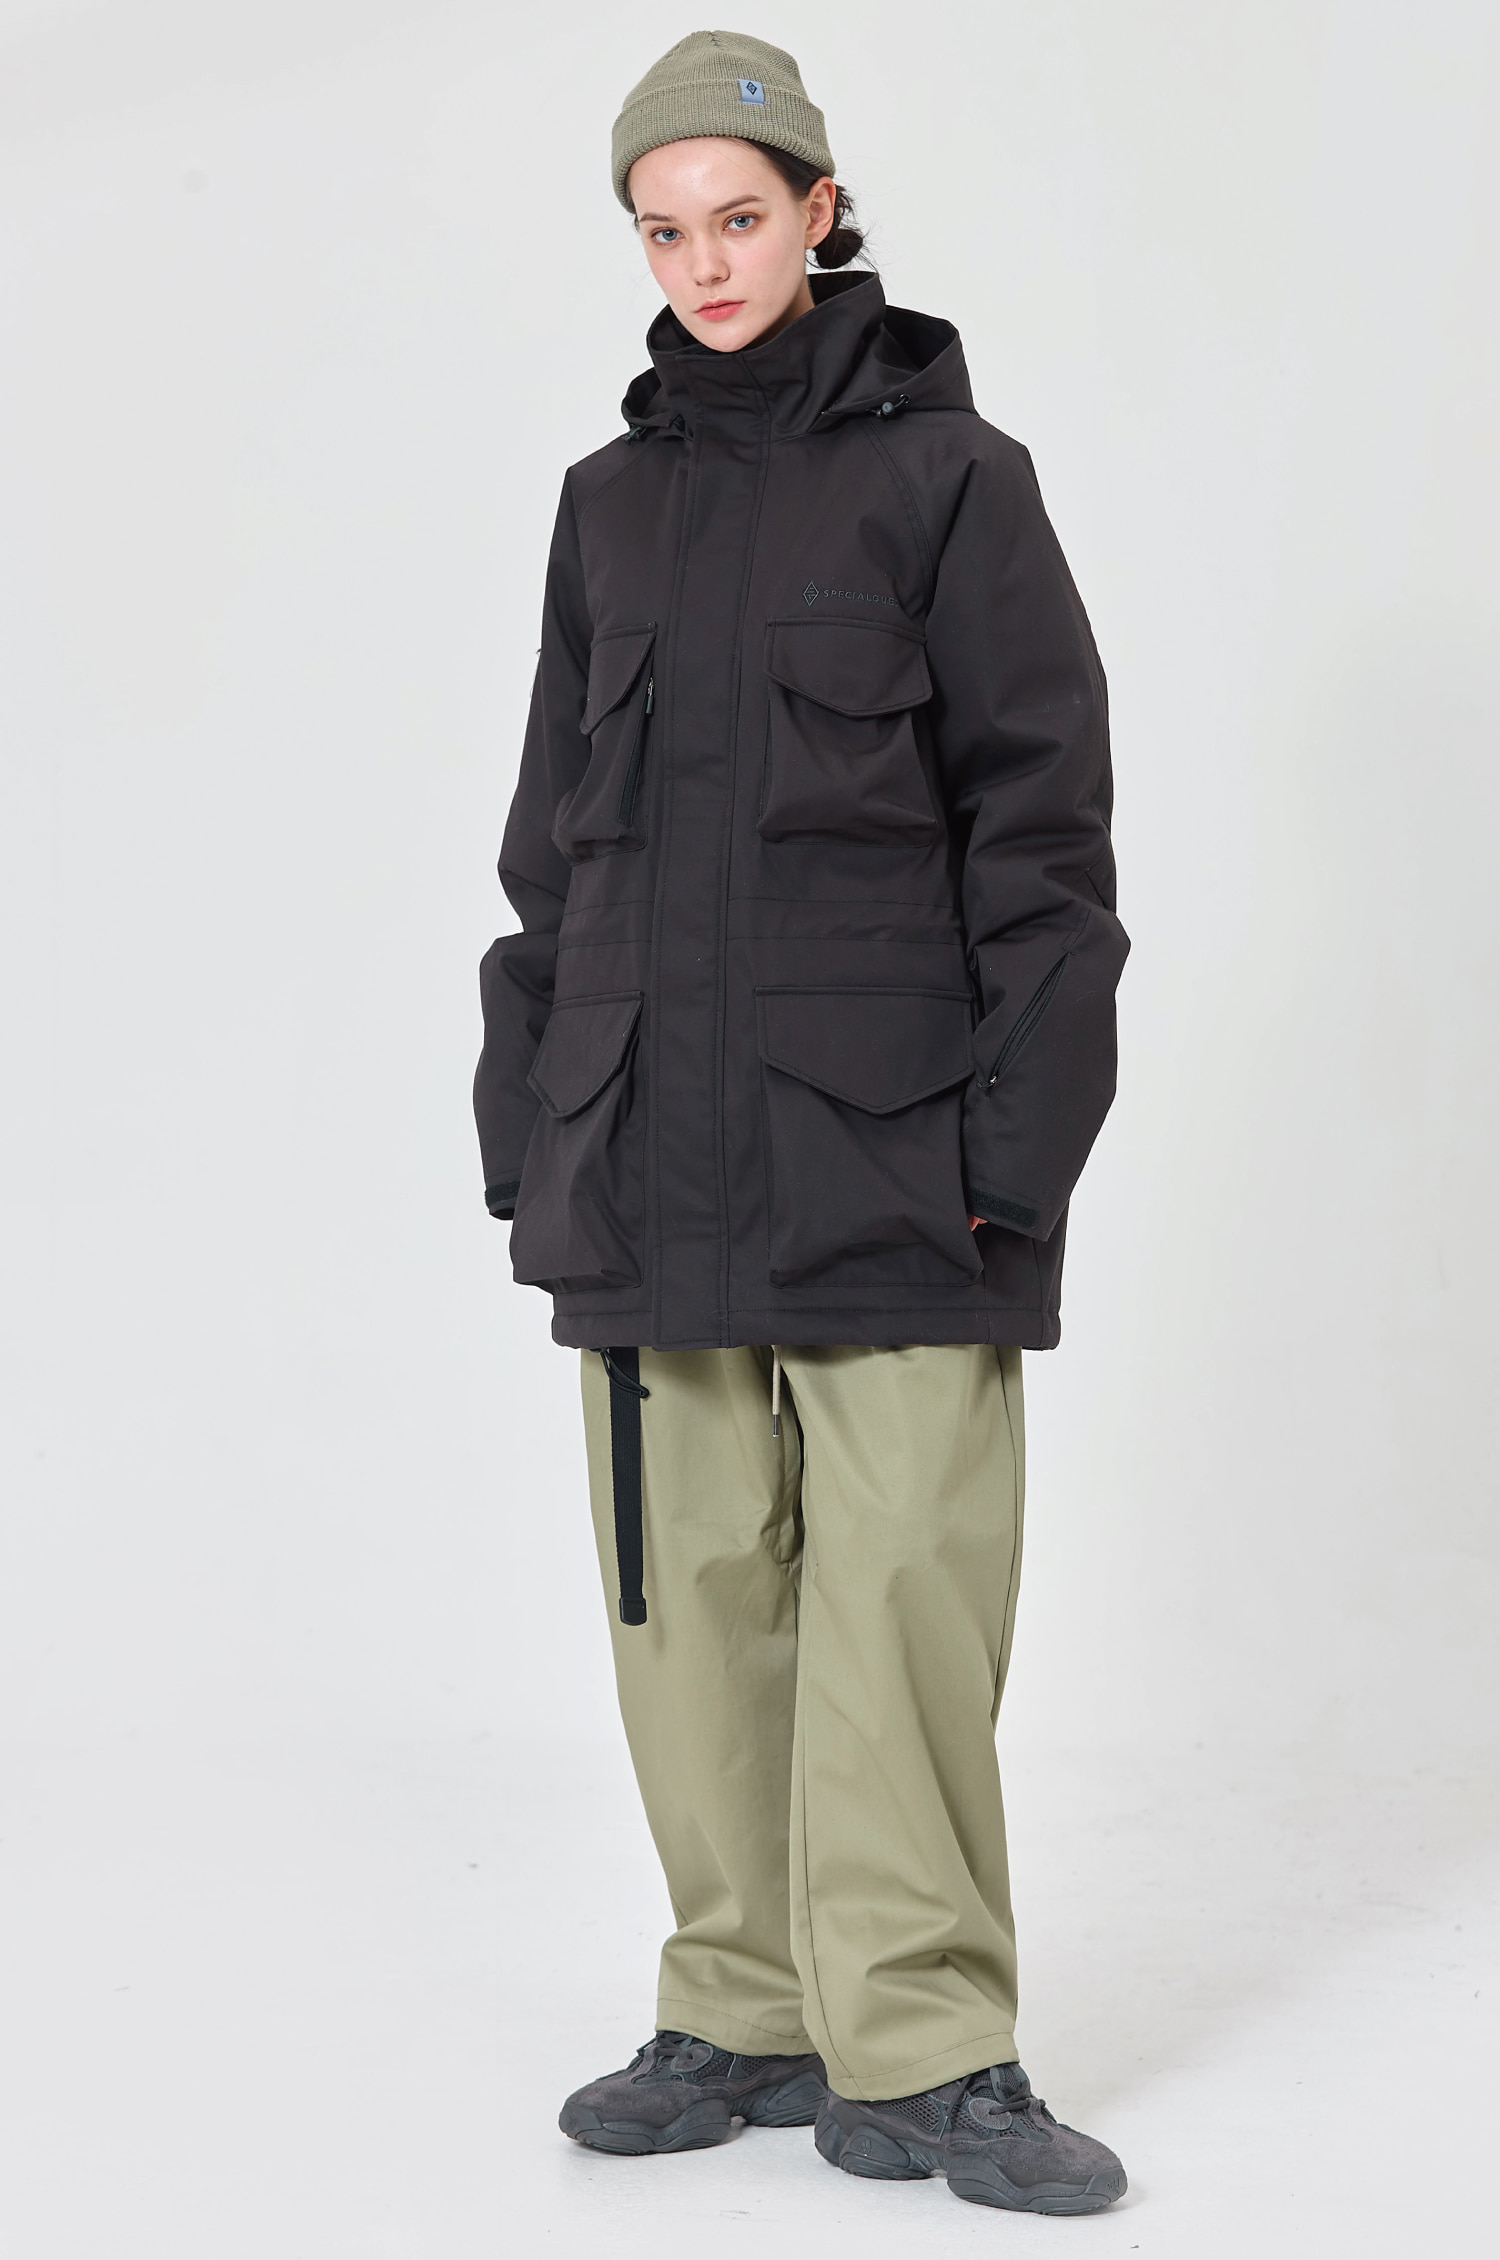 SET 2 - JACKET / PANTS